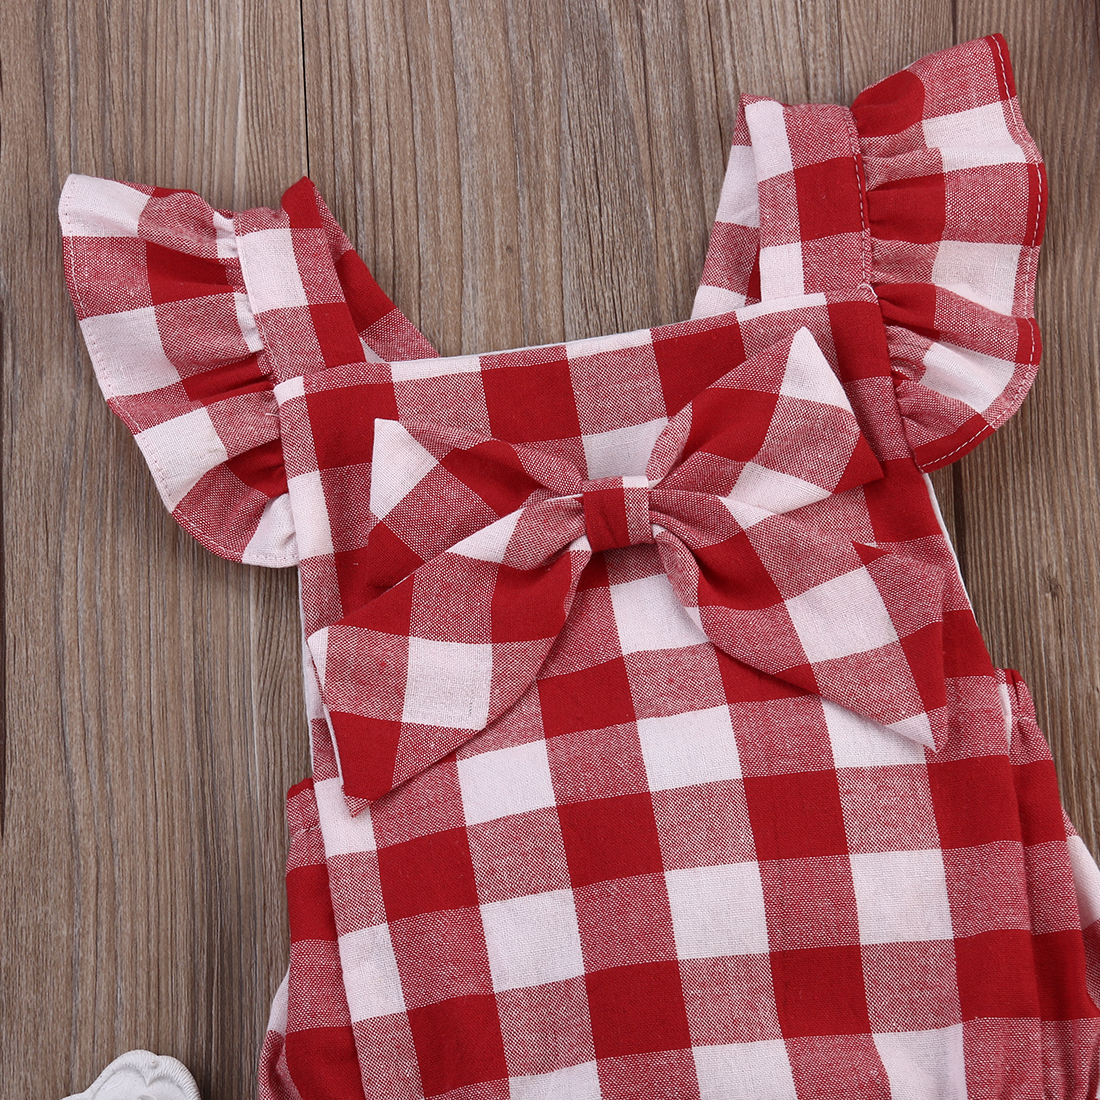 Newborn-Infant-Kids-Baby-Girl-Red-Plaid-Romper-Jumpsuit-With-Headband-Outfit-Clothes-0-18M-AU-5